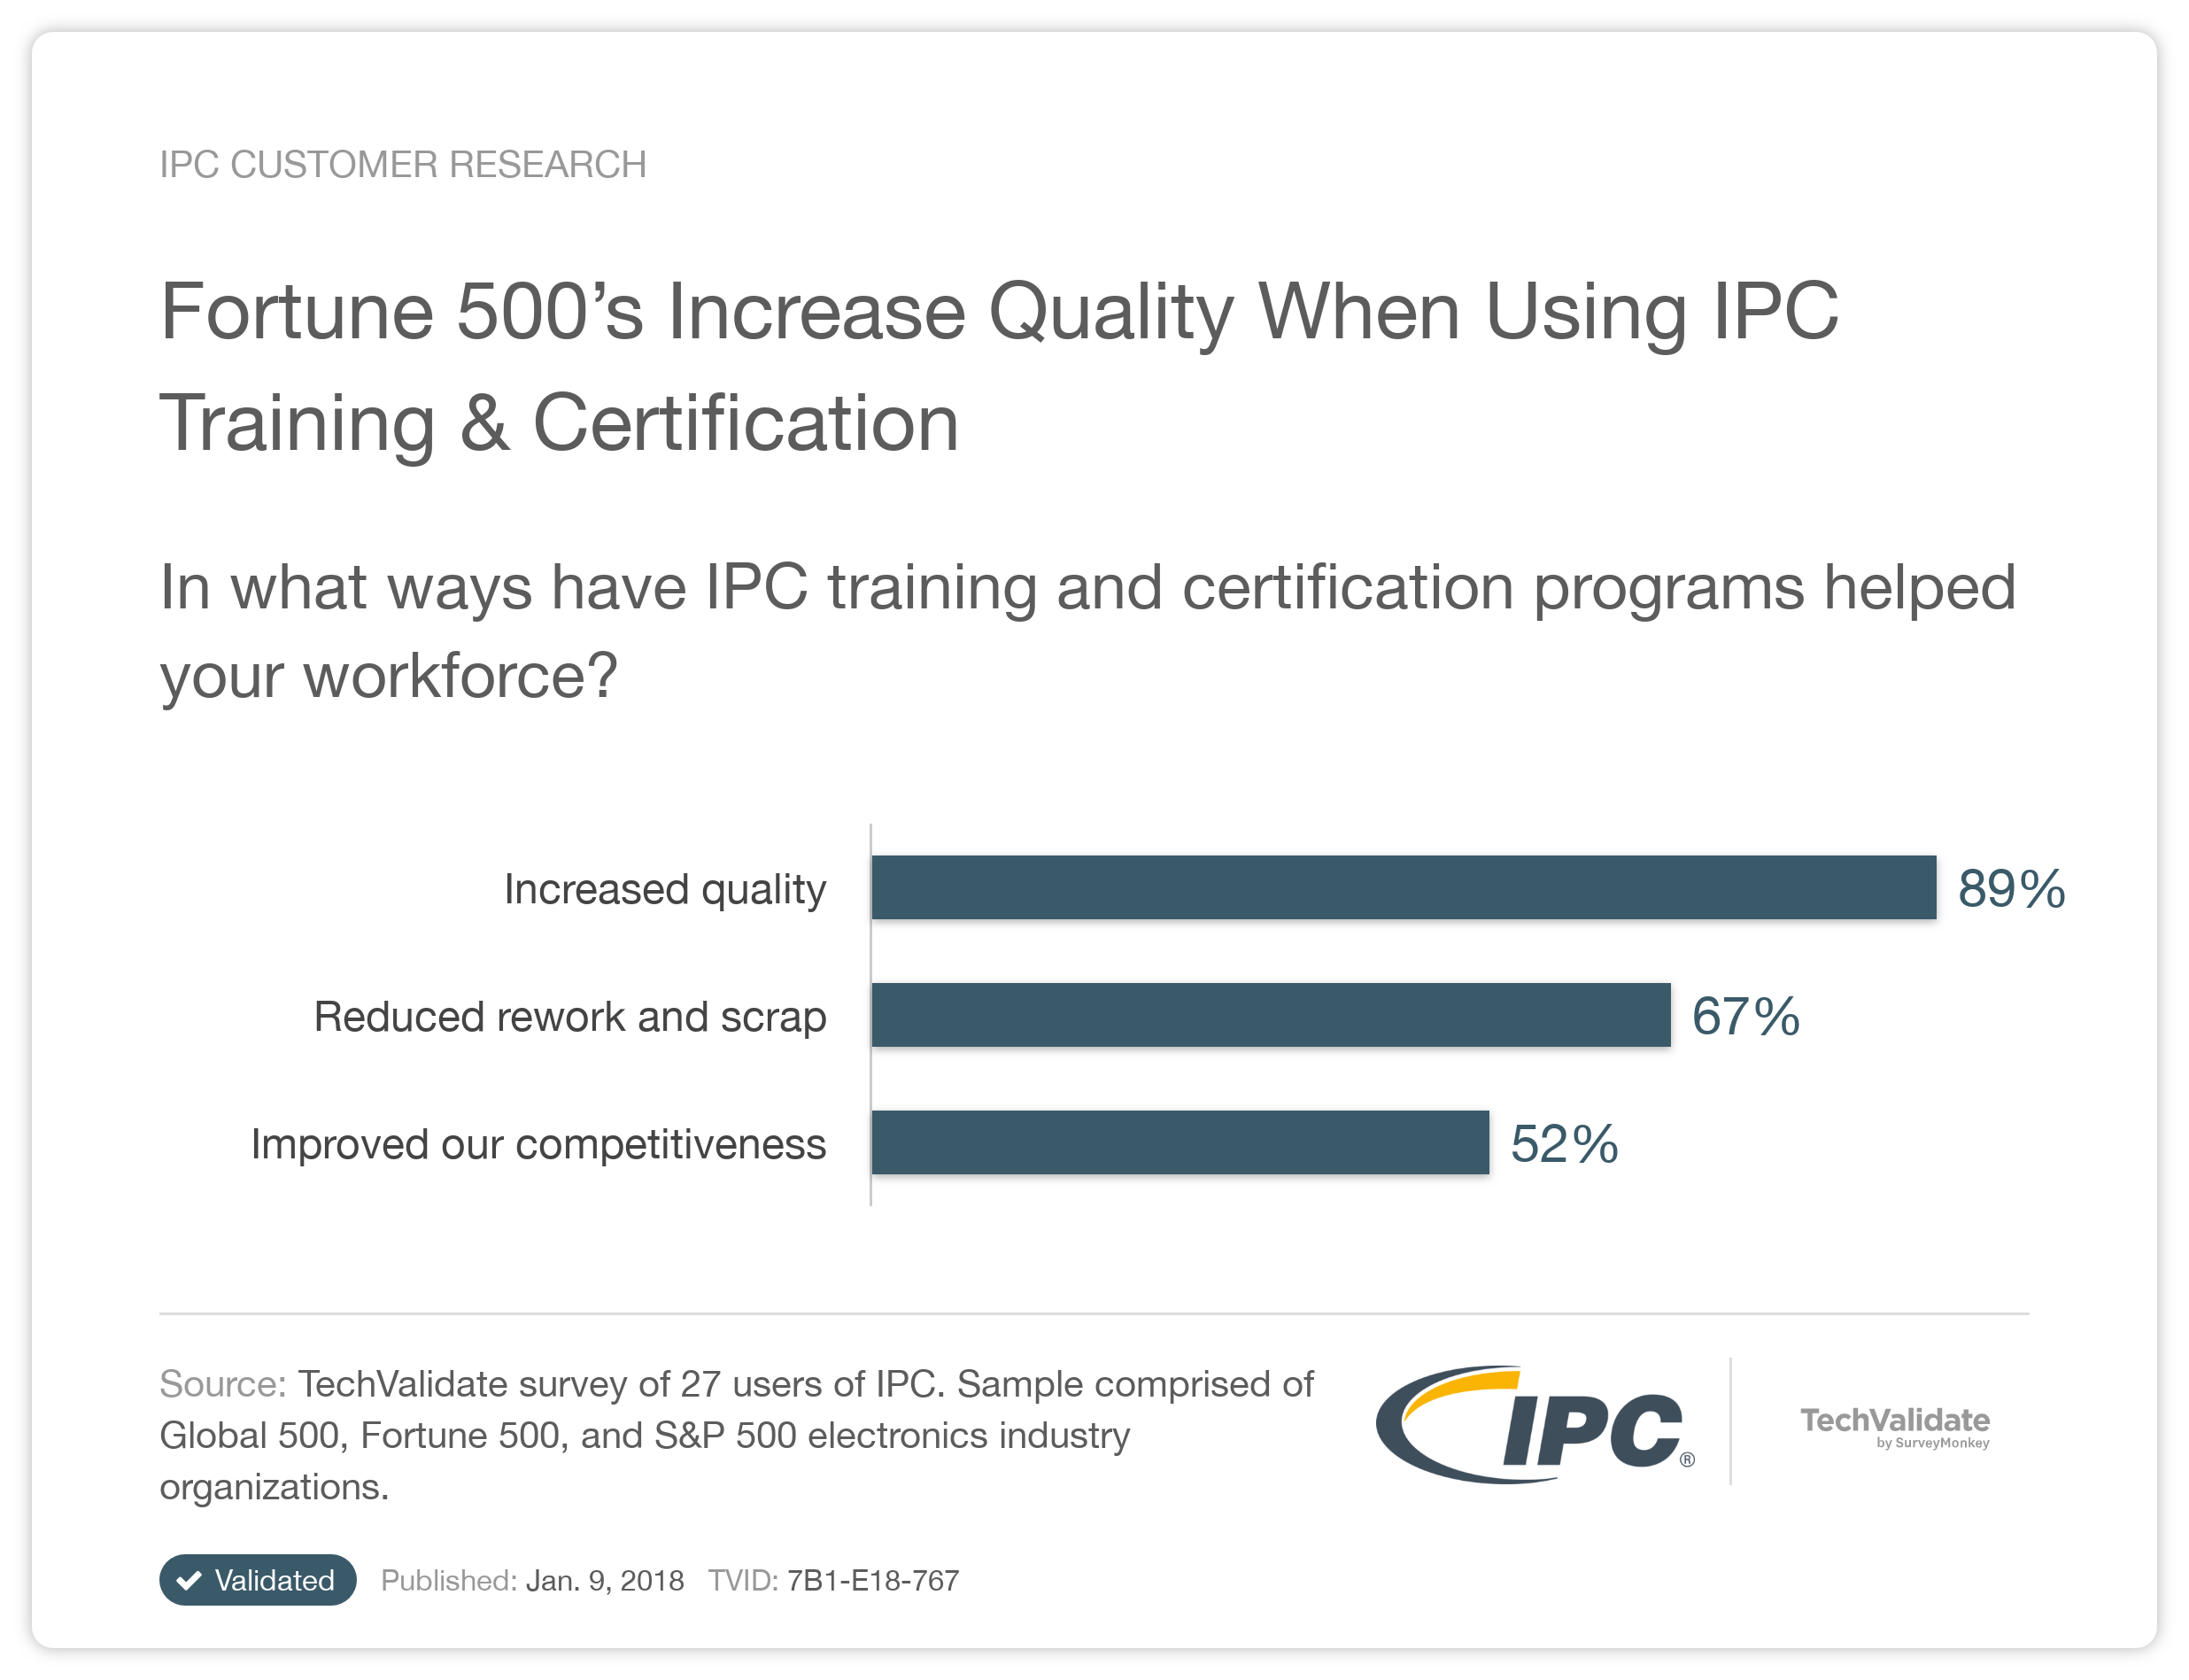 Ipc research chart fortune 500s increase quality when using ipc ipc research chart fortune 500s increase quality when using ipc training certification techvalidate 1betcityfo Choice Image